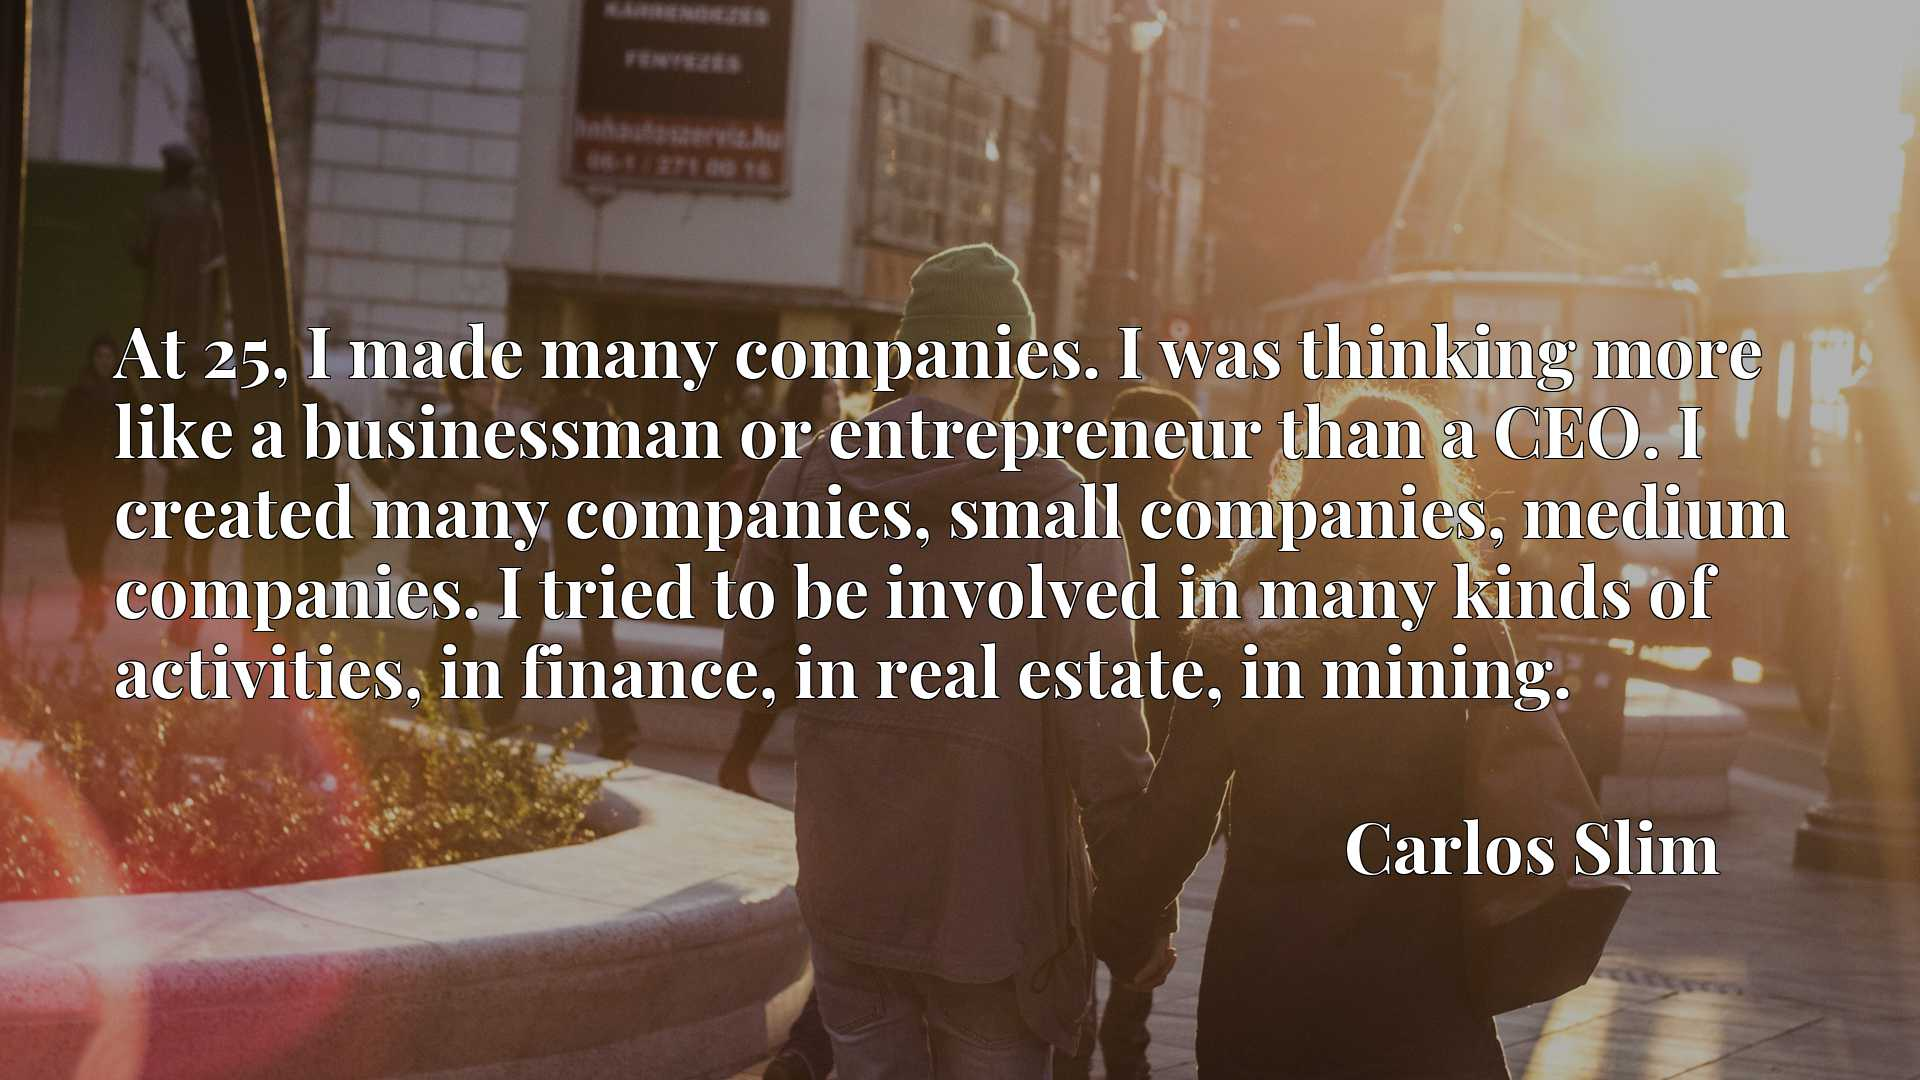 At 25, I made many companies. I was thinking more like a businessman or entrepreneur than a CEO. I created many companies, small companies, medium companies. I tried to be involved in many kinds of activities, in finance, in real estate, in mining.